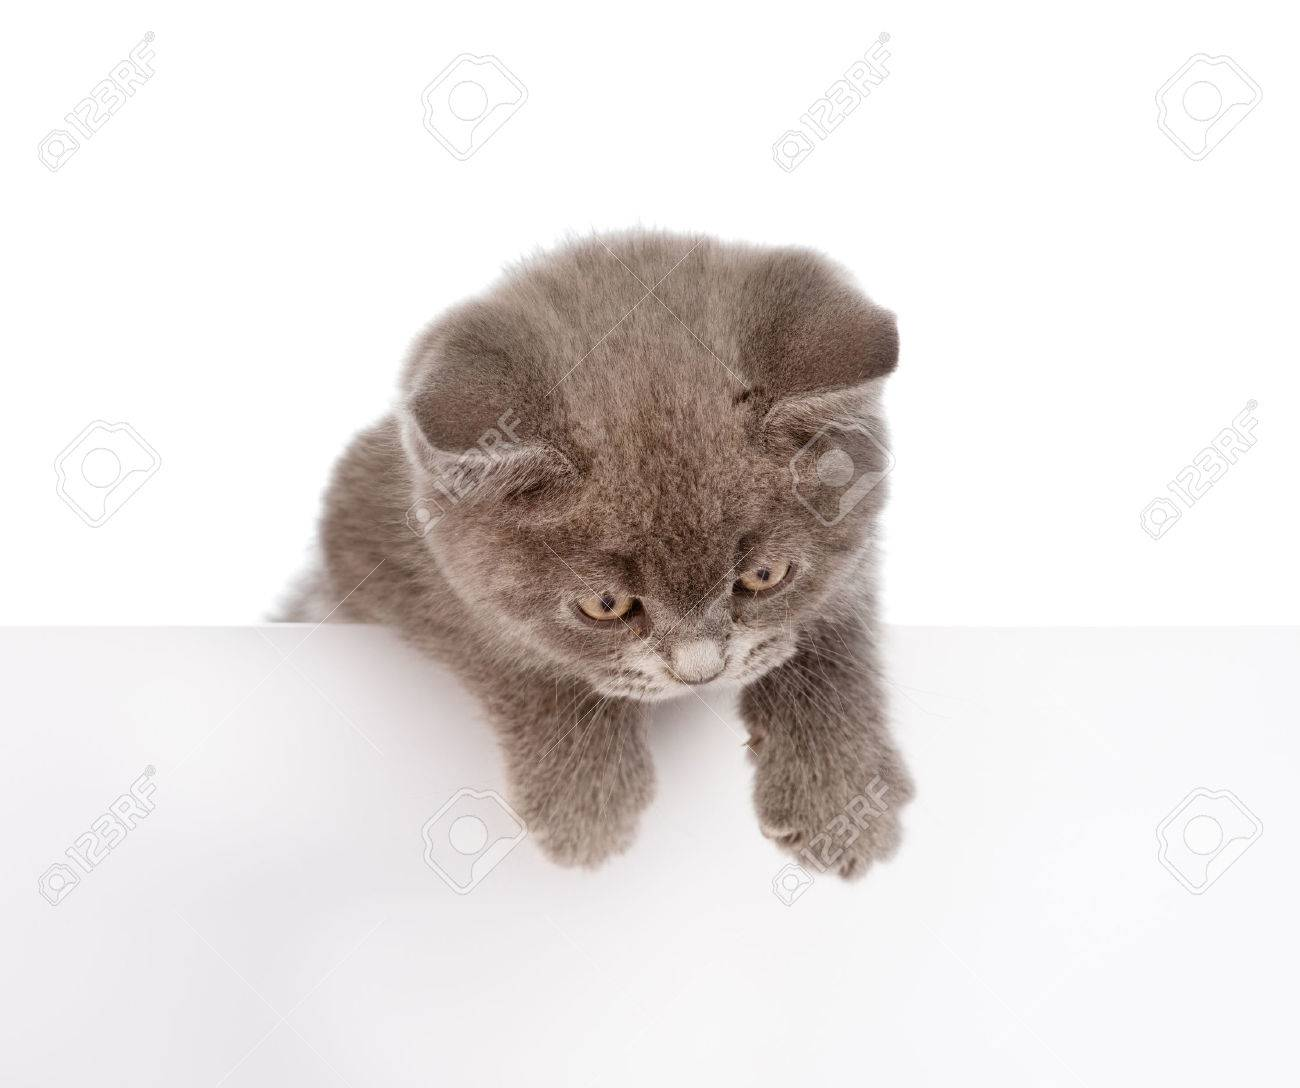 kitten hanging over blank poster board isolated on white background